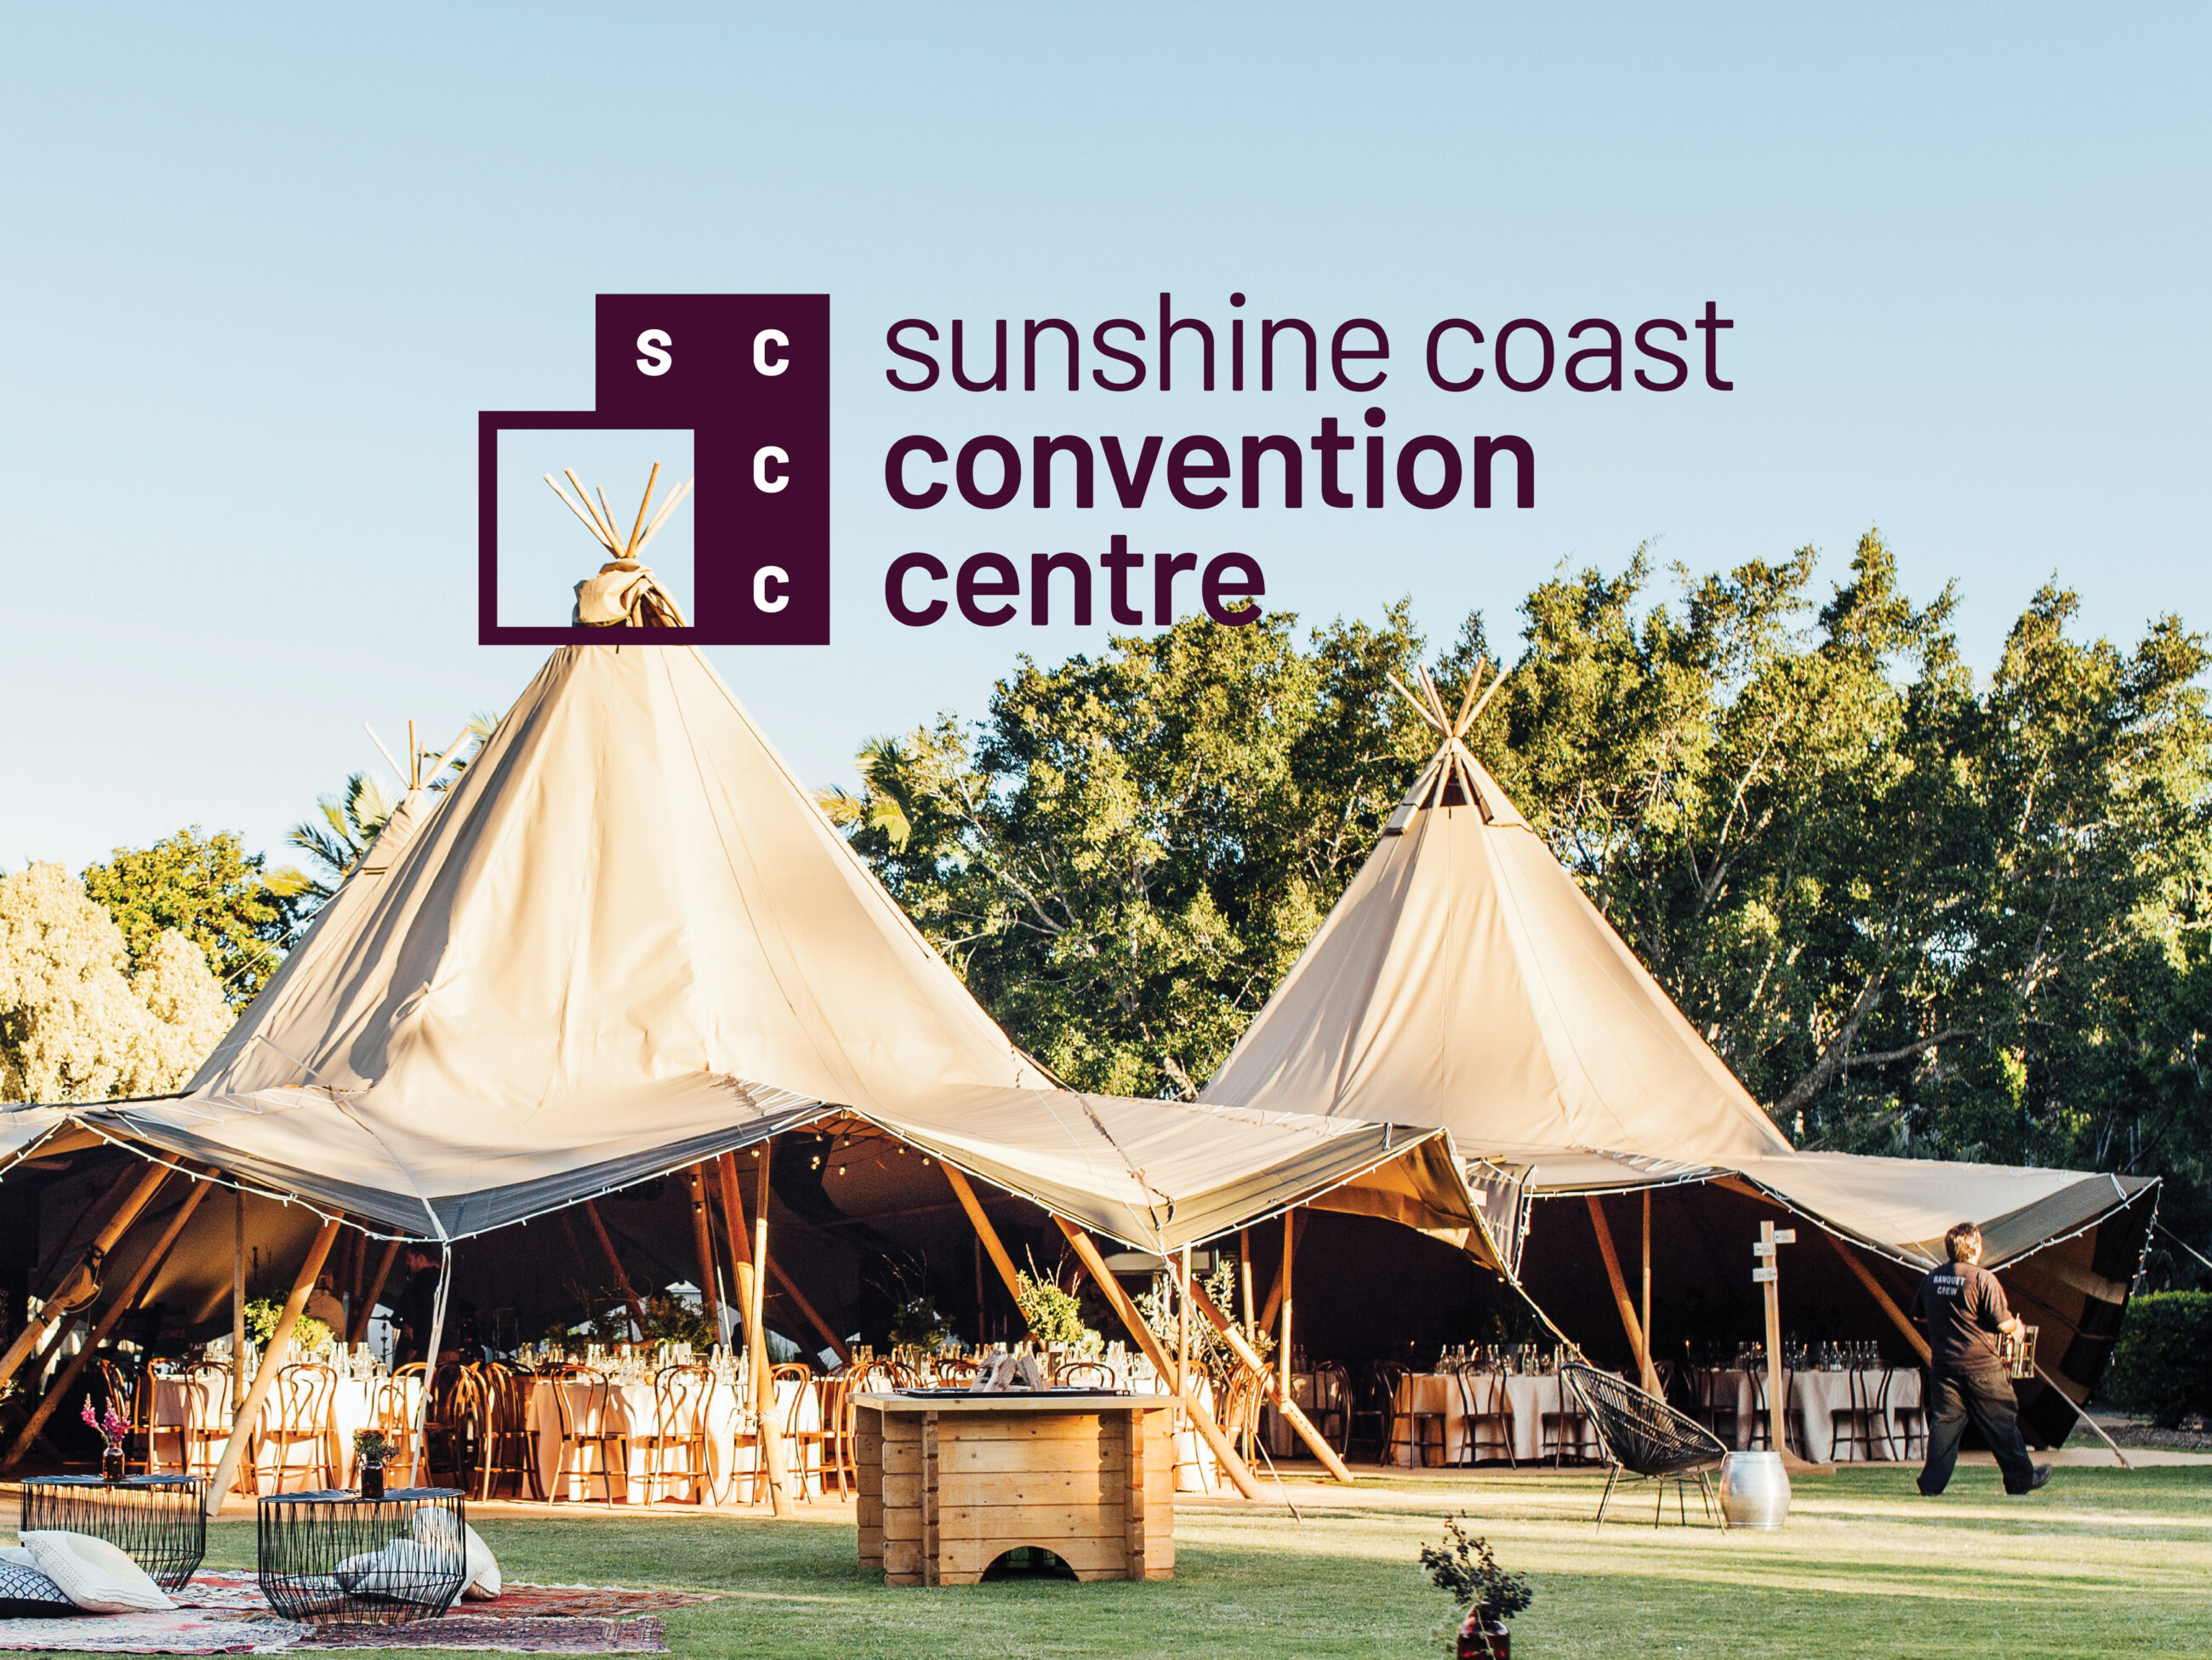 Sunshine Coast Convention Centre - Outdoor tipi event